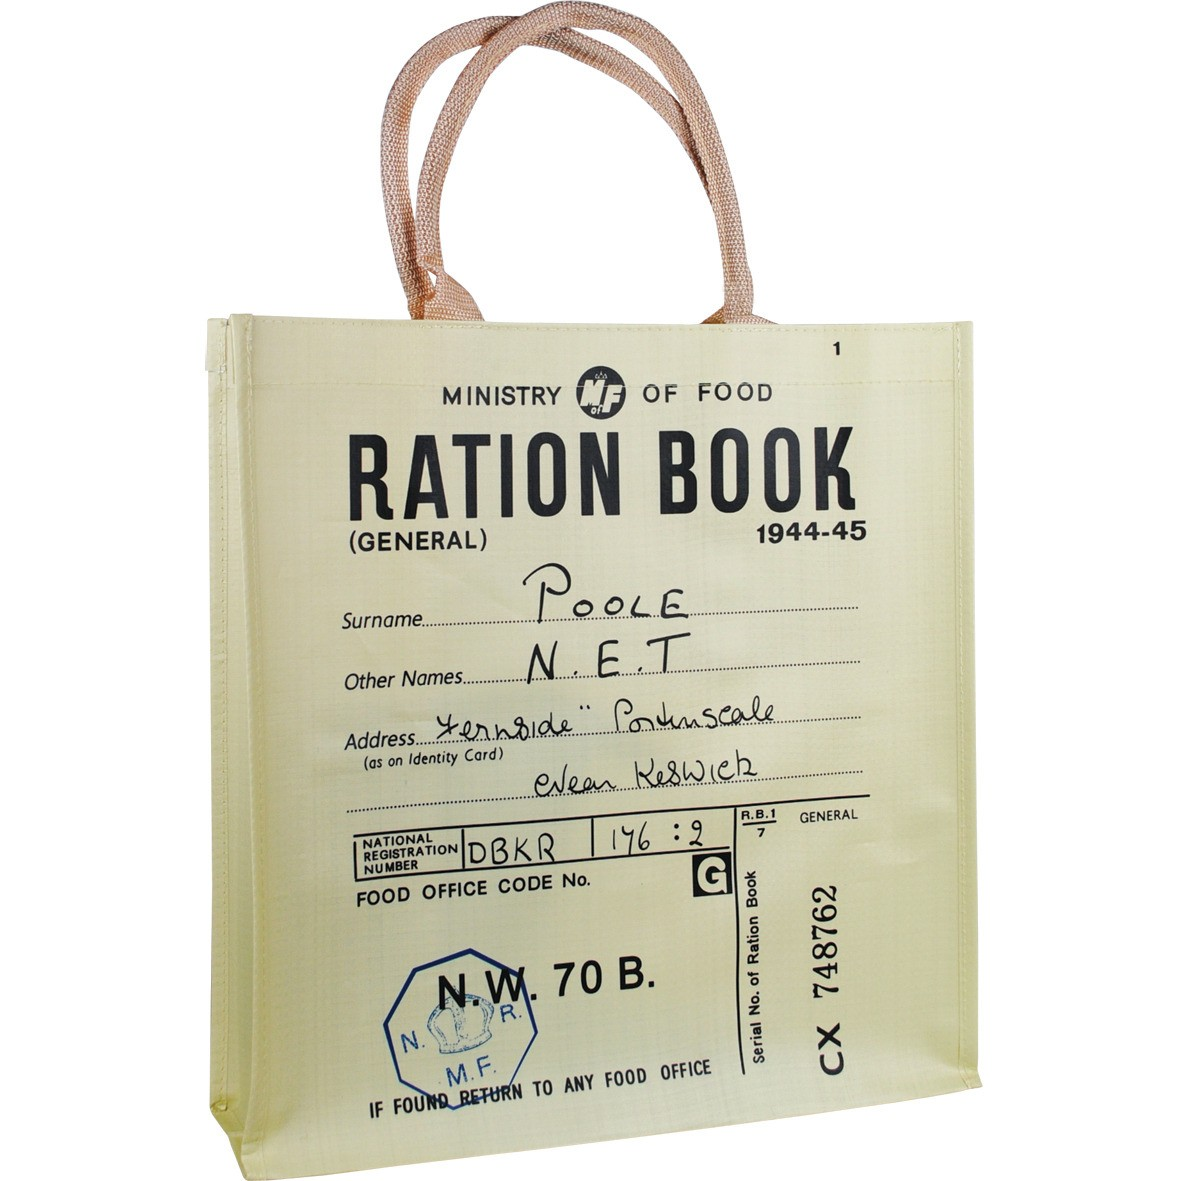 NEW RATION BOOK REUSABLE SHOPPER BAG RETRO VINTAGE WAR SHOPPING OPIE